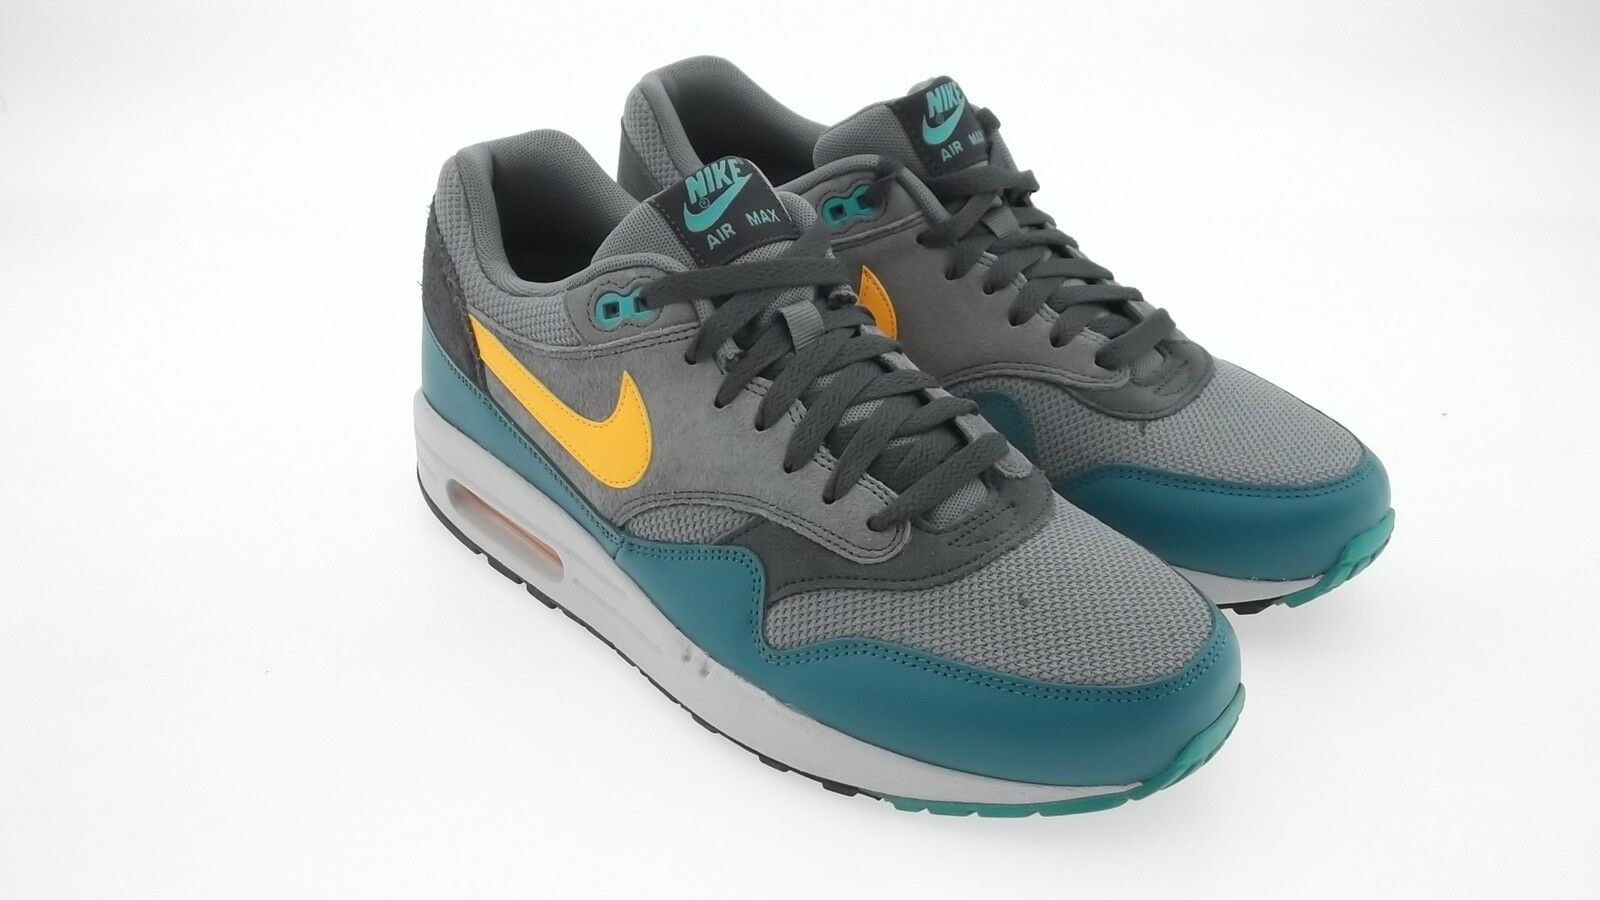 537383-018 Nike homme Air Max 1 Essential (gray / cool / gray / laser orange / cool ctln) a10e50